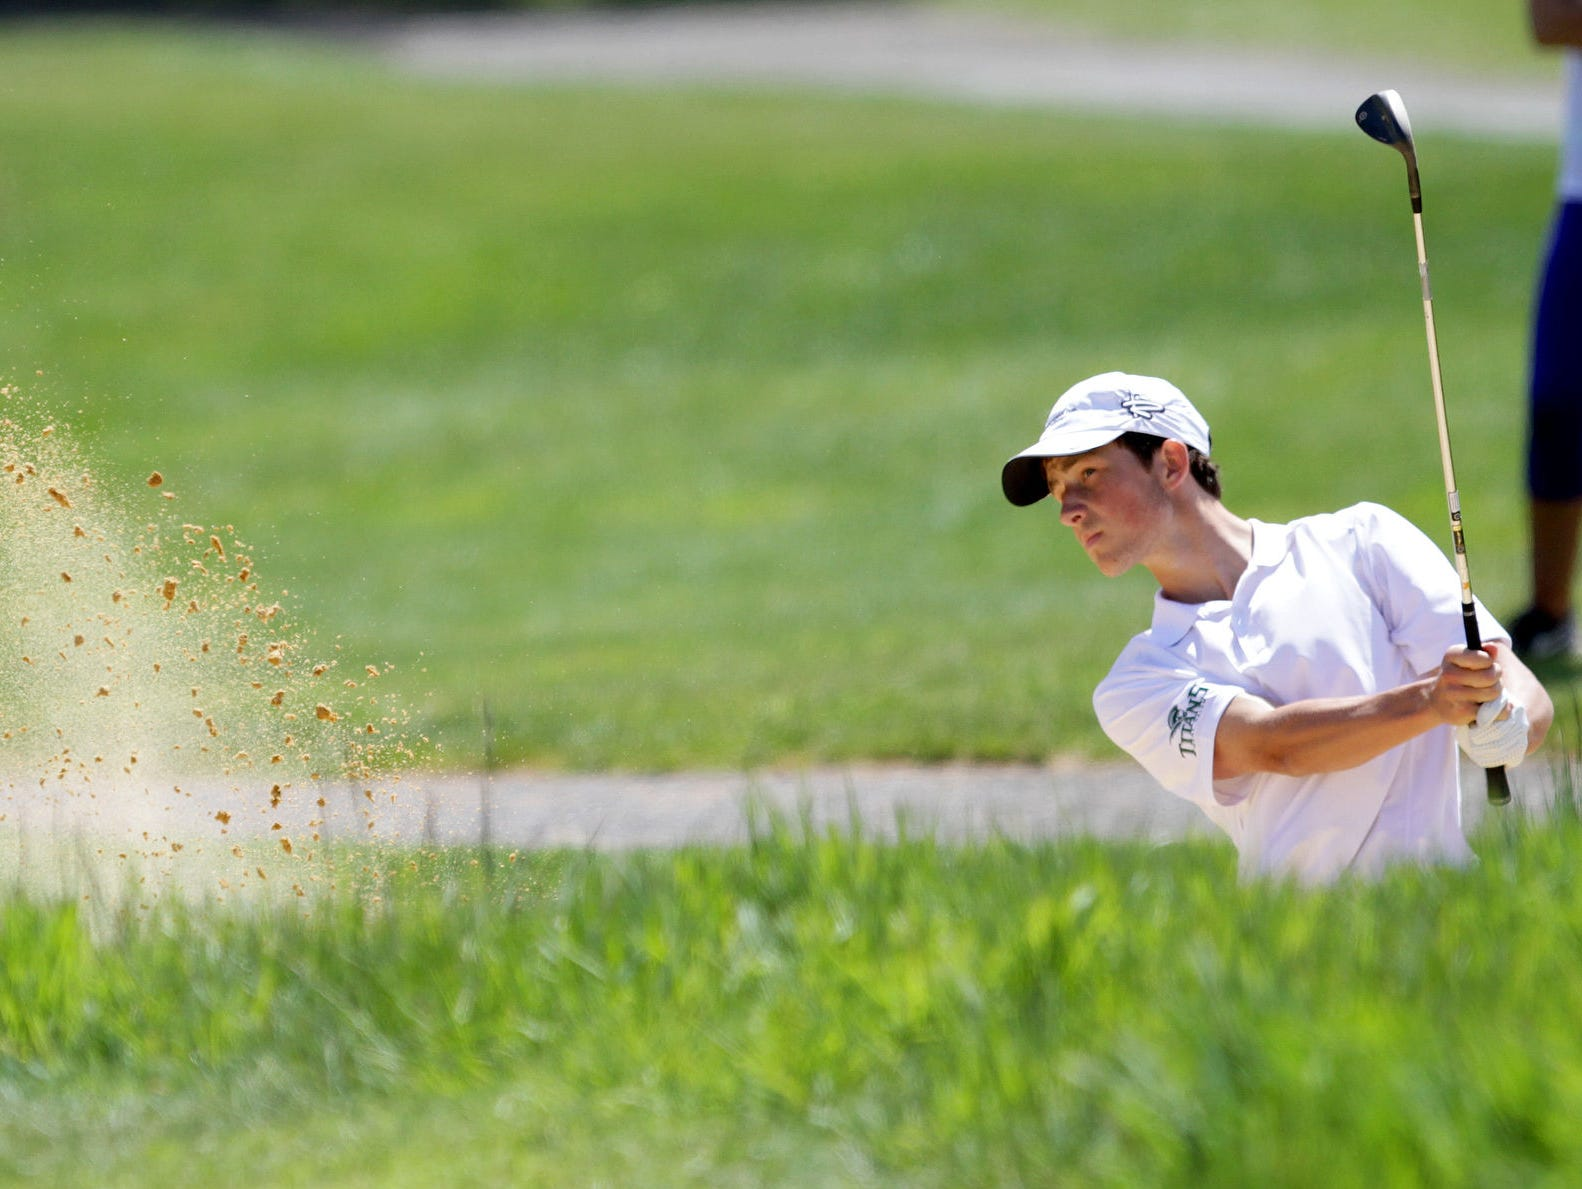 West Salem's Michiel Eyre competes Monday, April 27, in the final regular-season Greater Valley Conference boys golf meet at Creekside Golf Club in Salem.